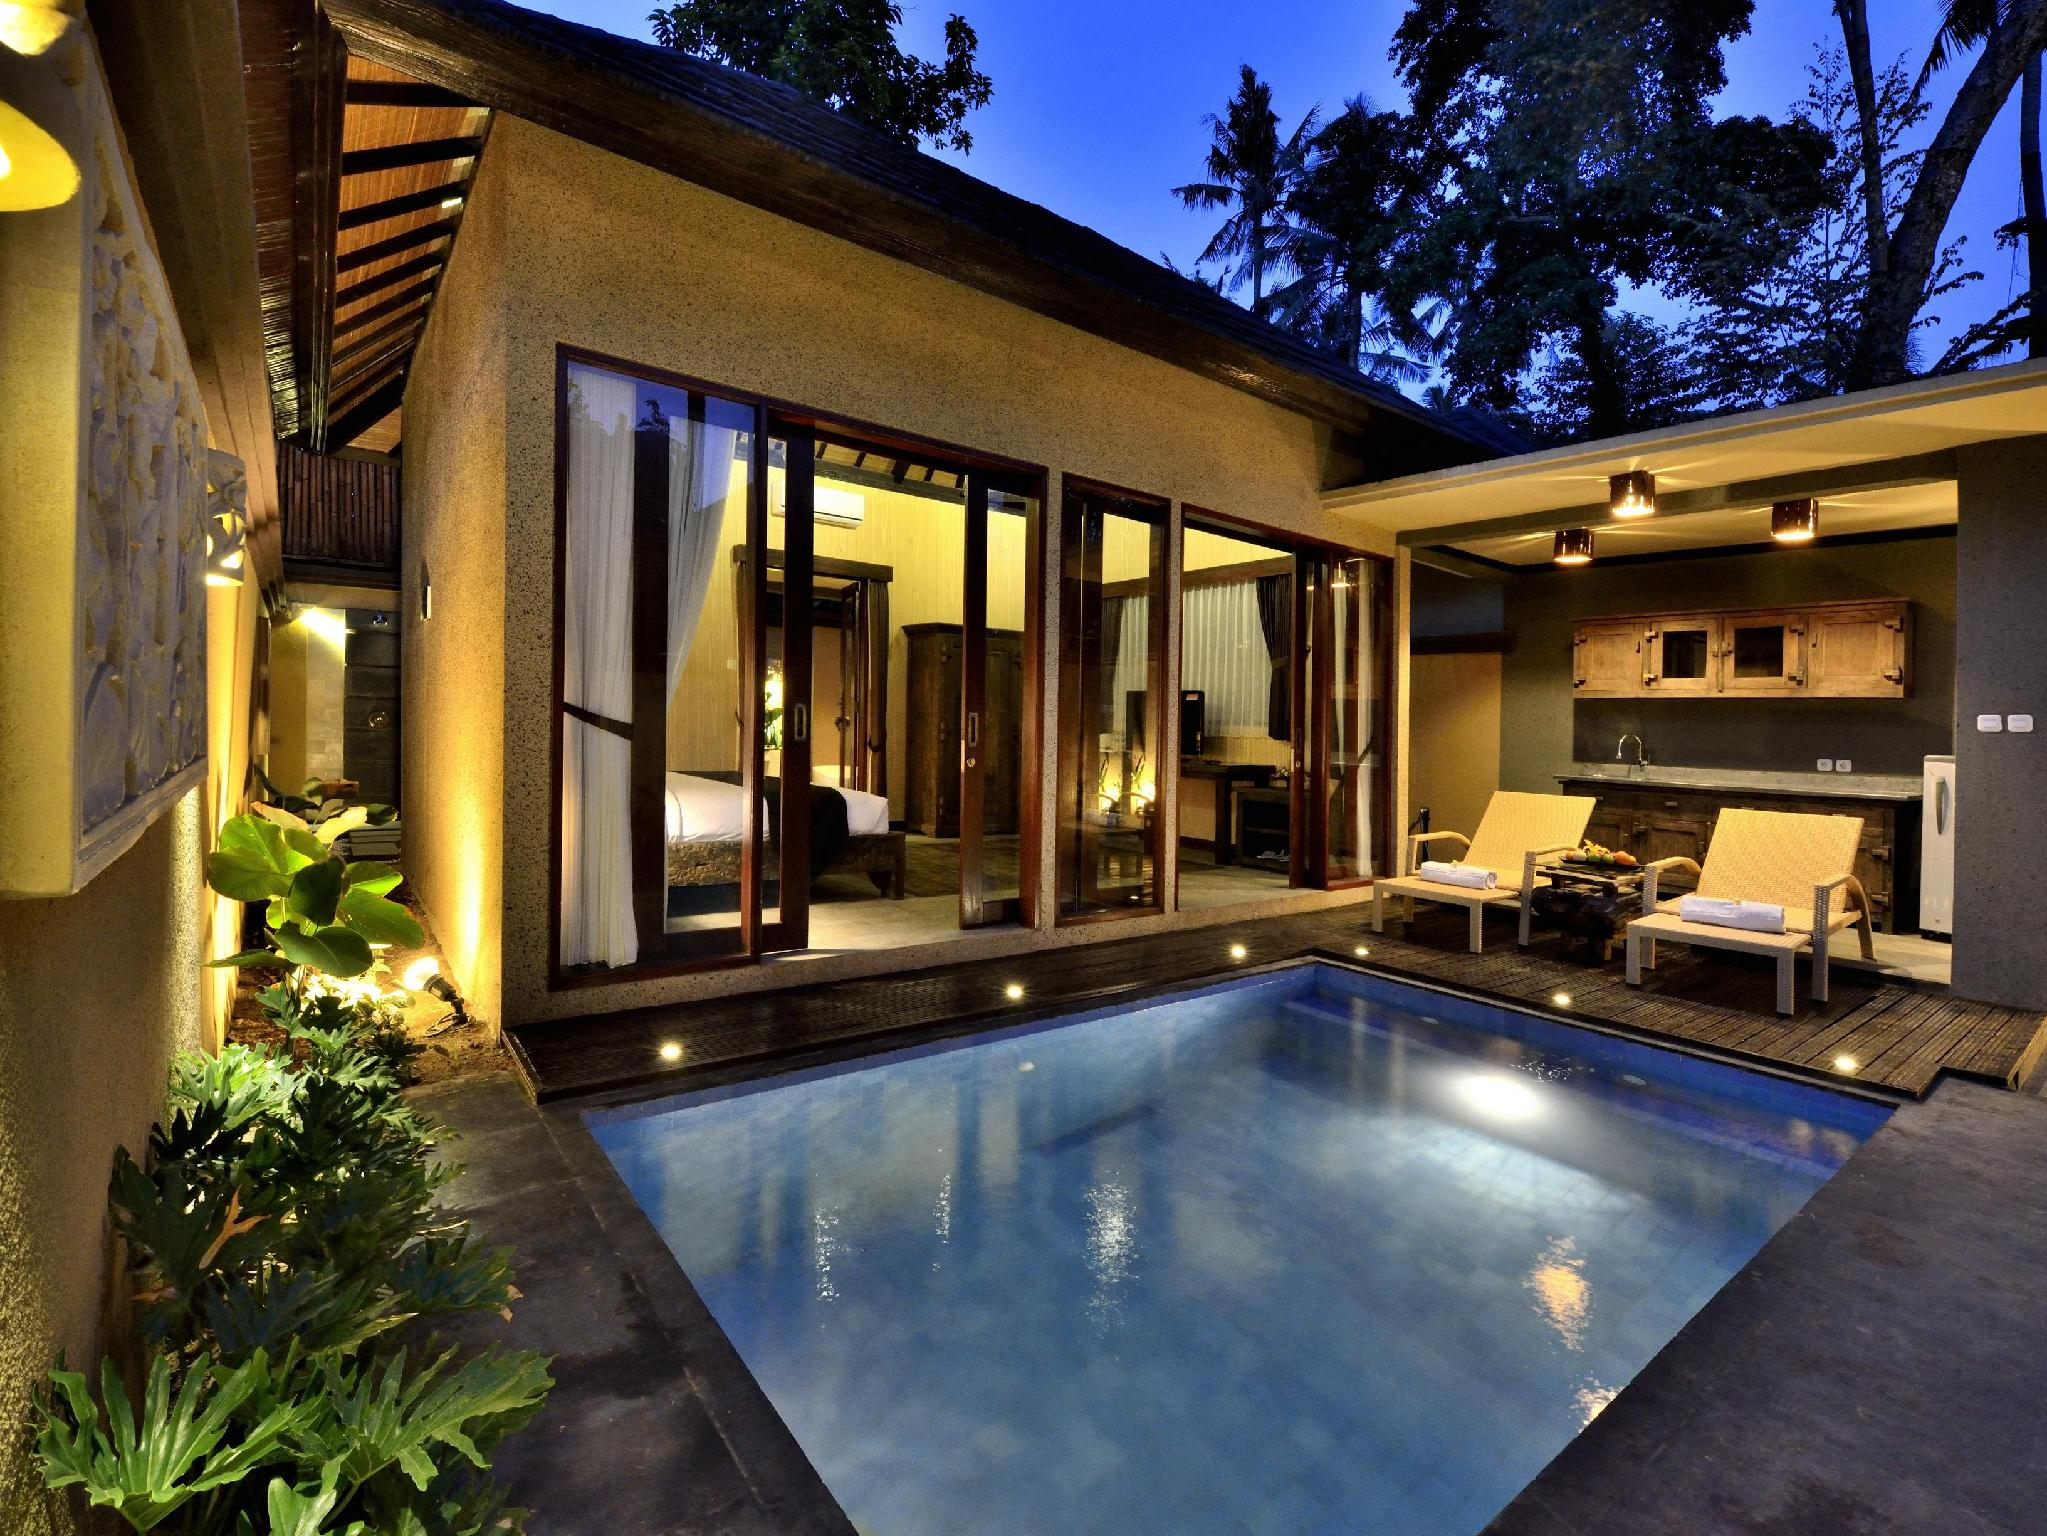 Honeymoon Package 1 Bedroom Pool Villa 1 time candle light dinner, 1 time 1 hour Balinese Massage, Honeymoon cake and fruit basket upon arrival